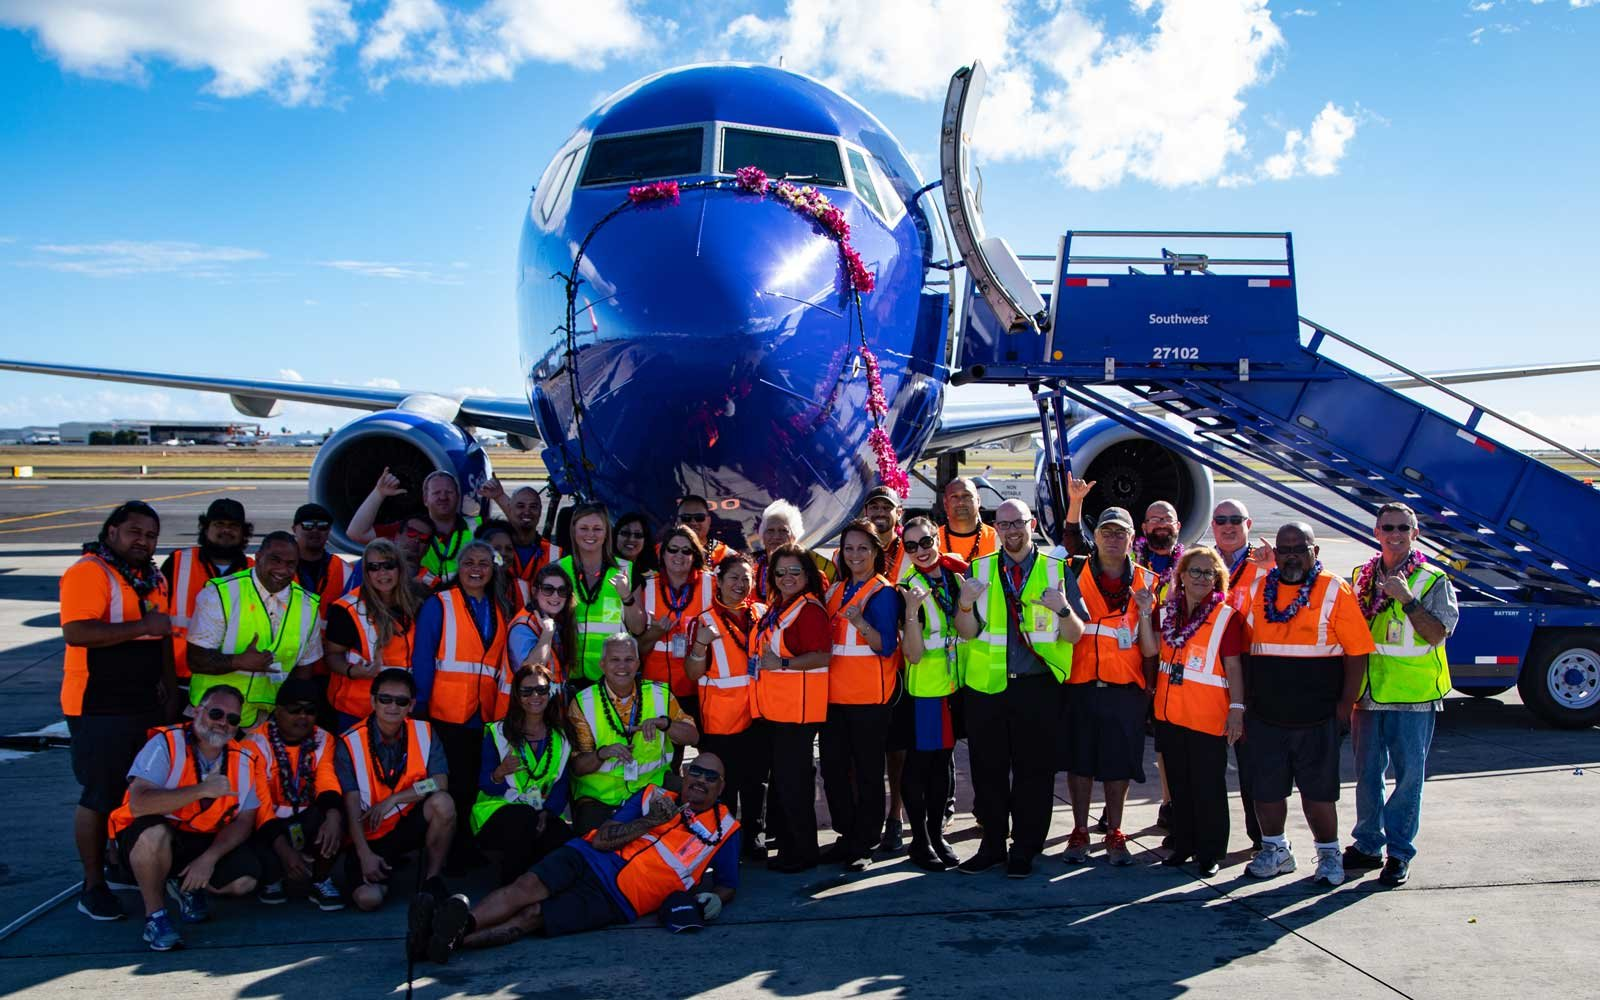 Pictured here are employees of Southwest Airlines.